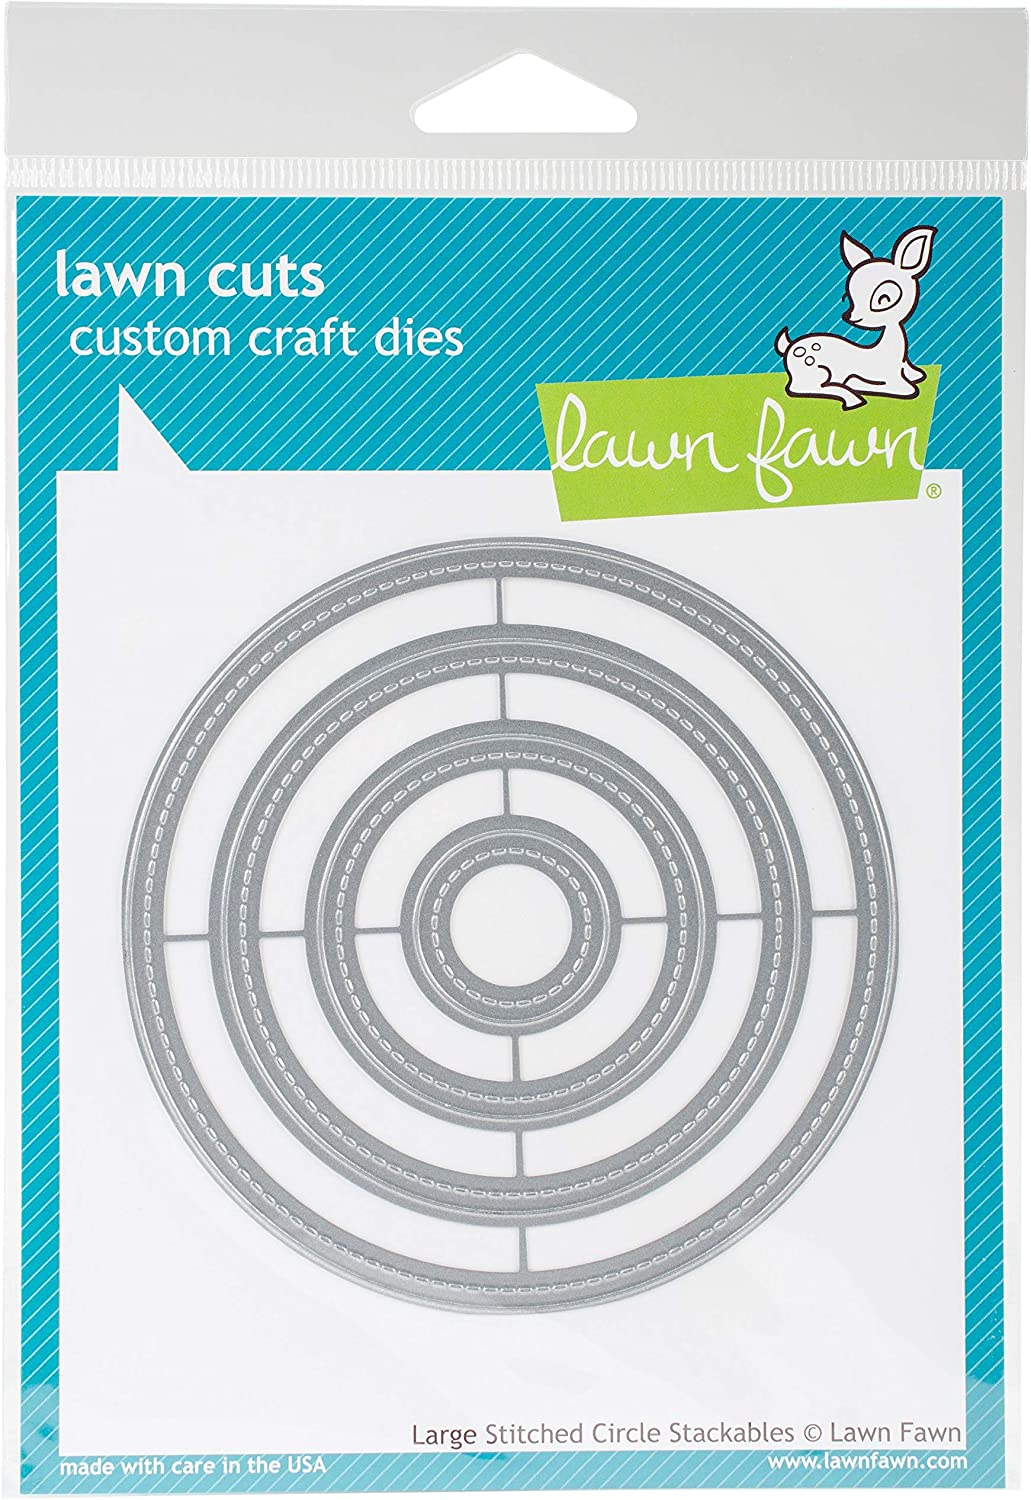 Lawn Fawn Large Stitched Circle Stackables Custom Craft Dies LF795